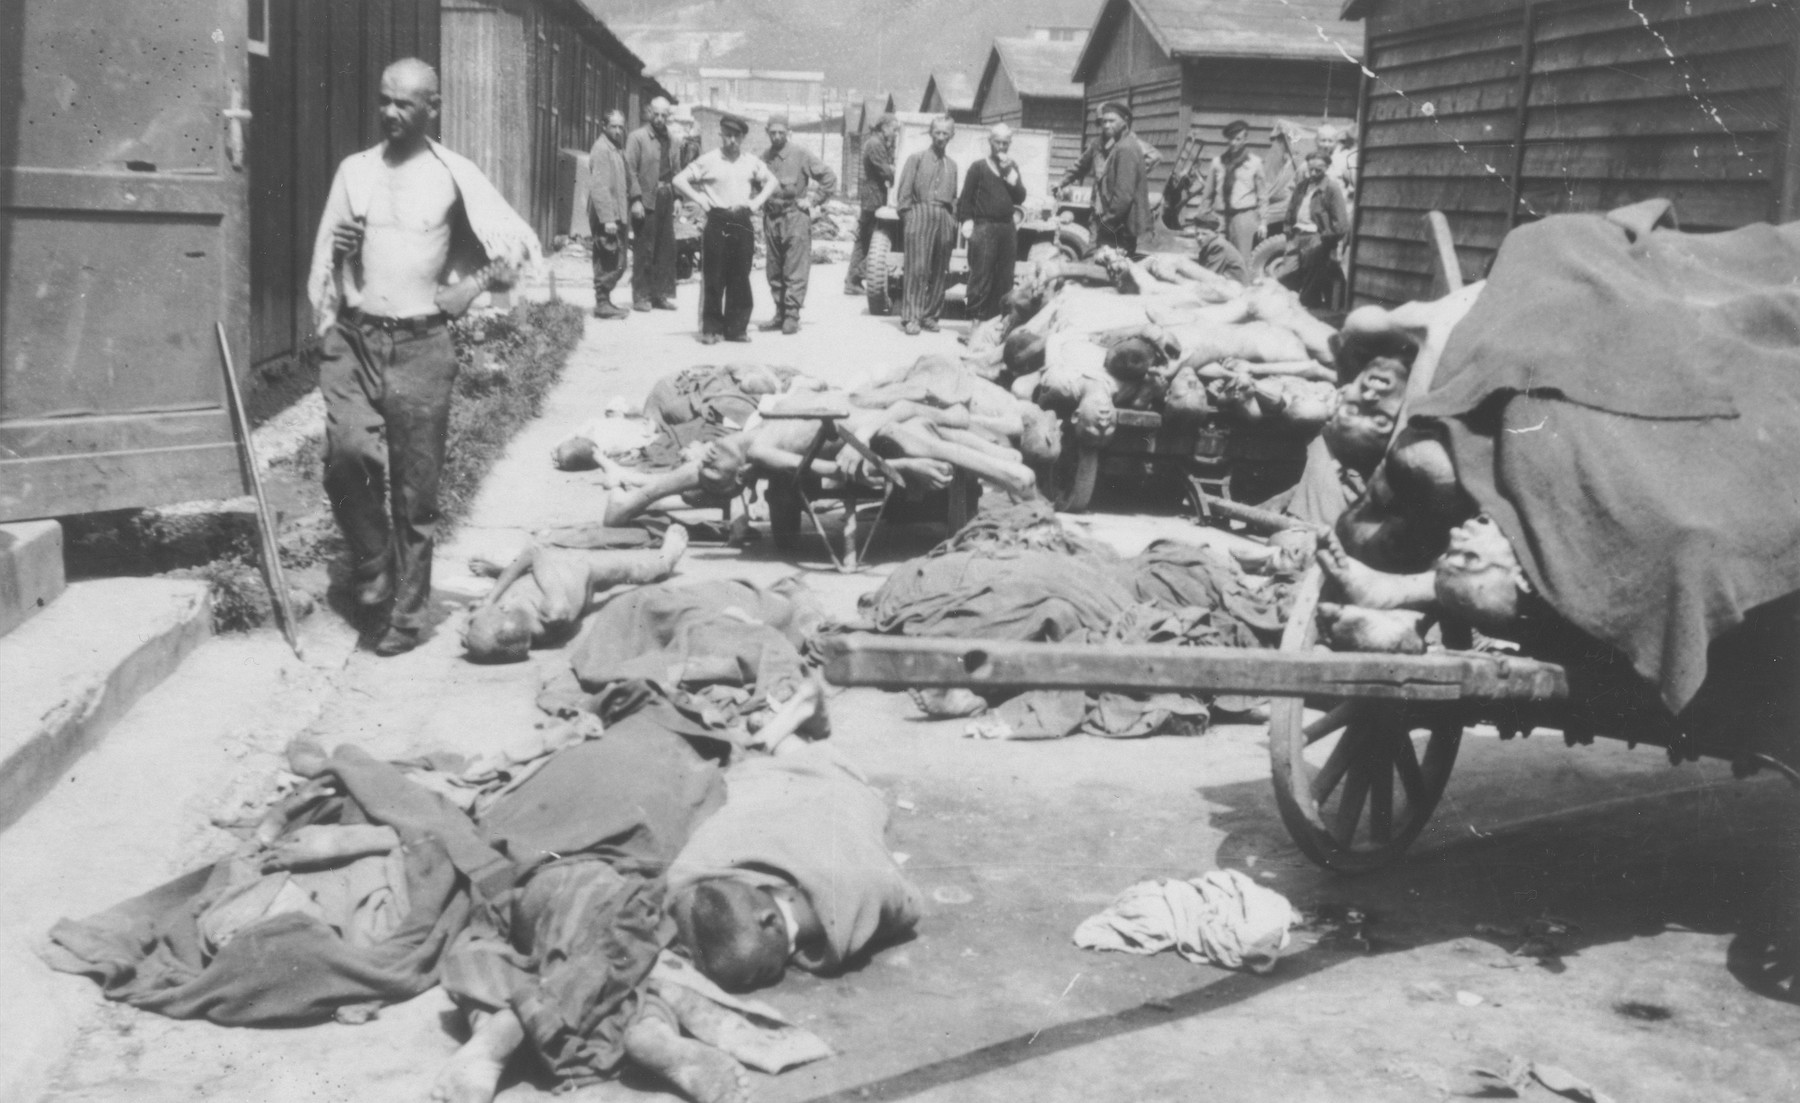 Survivors view corpses that have been piled up on carts and on the ground prior to their burial [probably at the Gusen concentration camp].